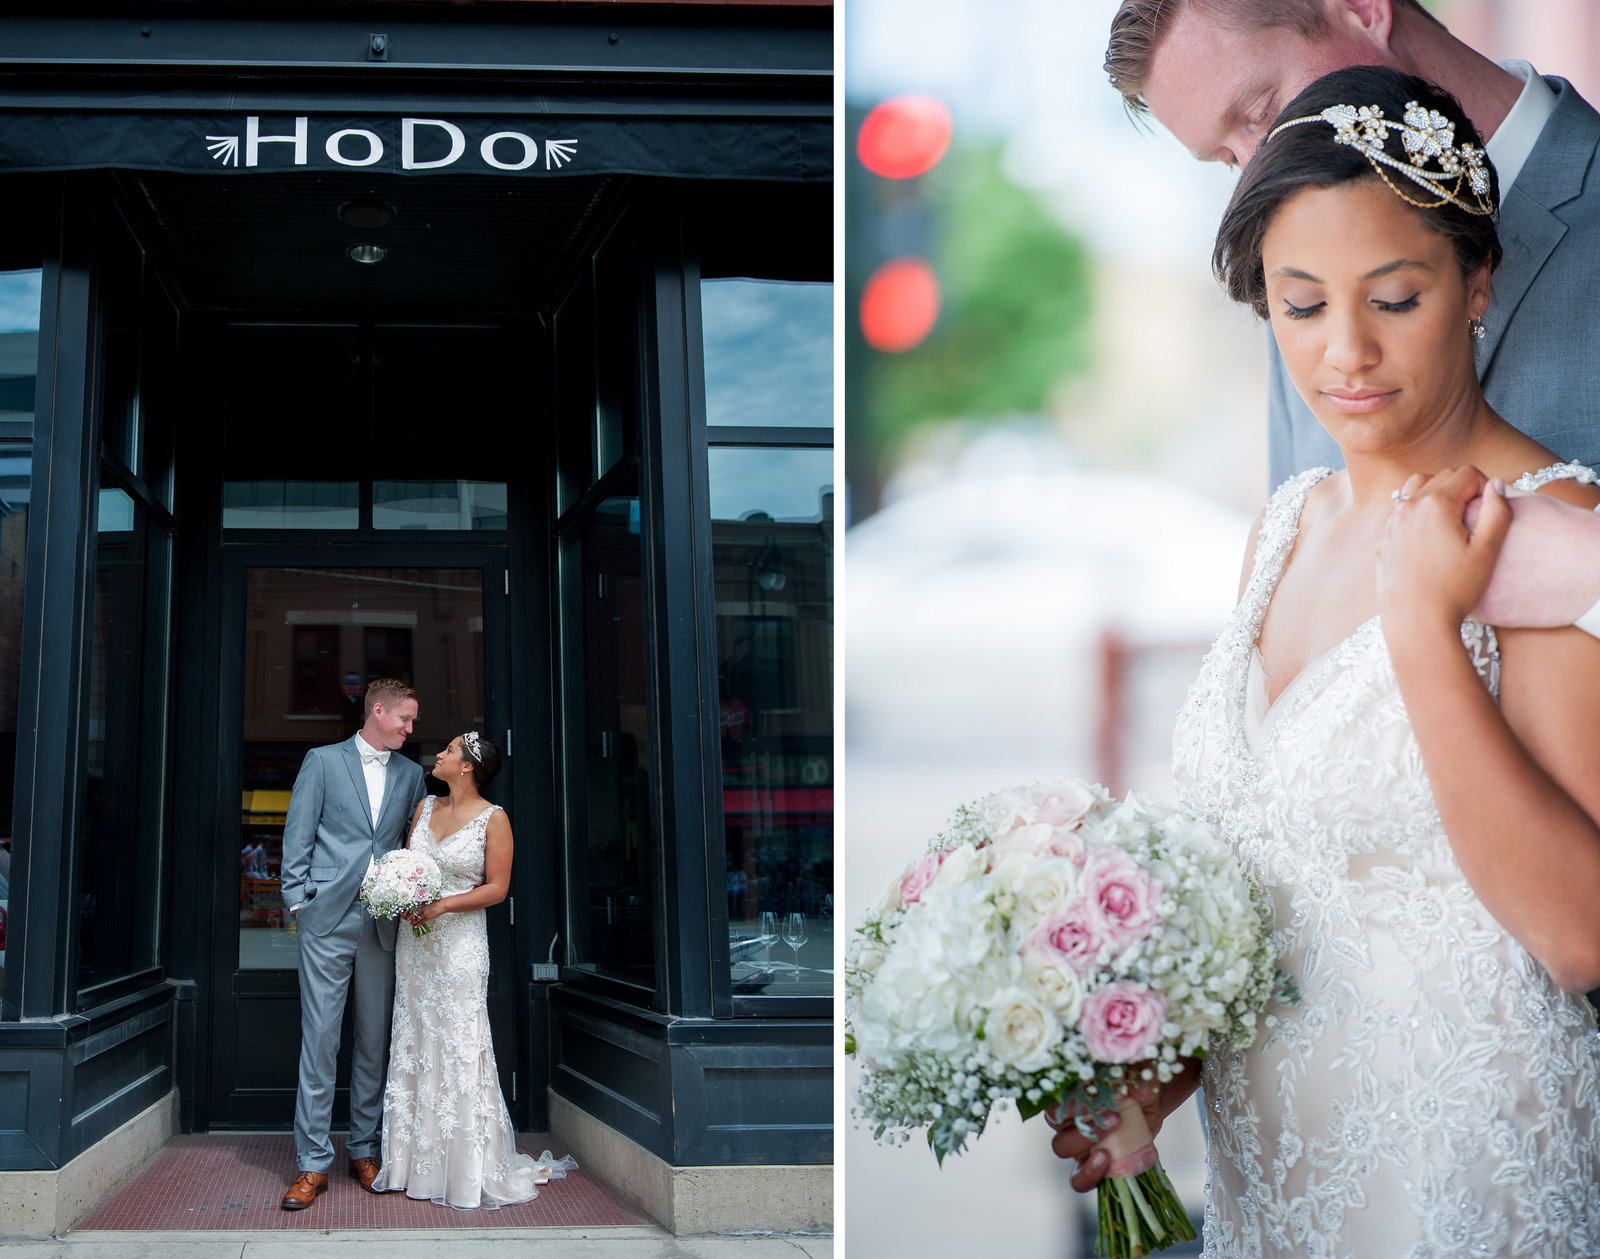 Fargo downtown hodo hotel weddings photographed by Kris Kandel